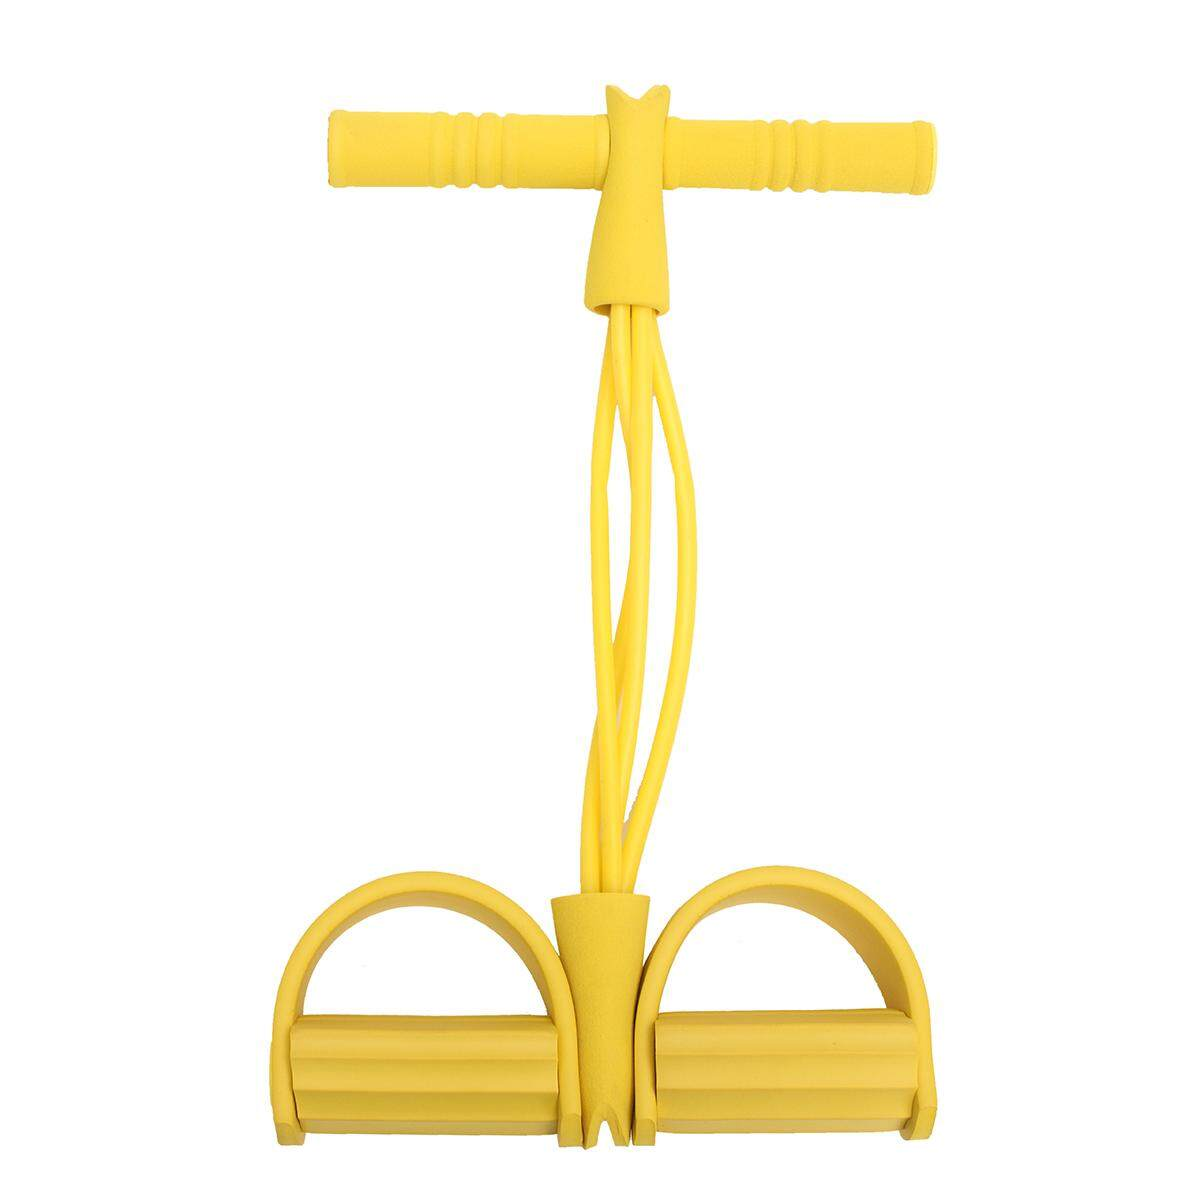 4 Tube Body Tummy Action Rower Abdominal Exercise Fitness Equipment Workout Tool Yellow By Glimmer.